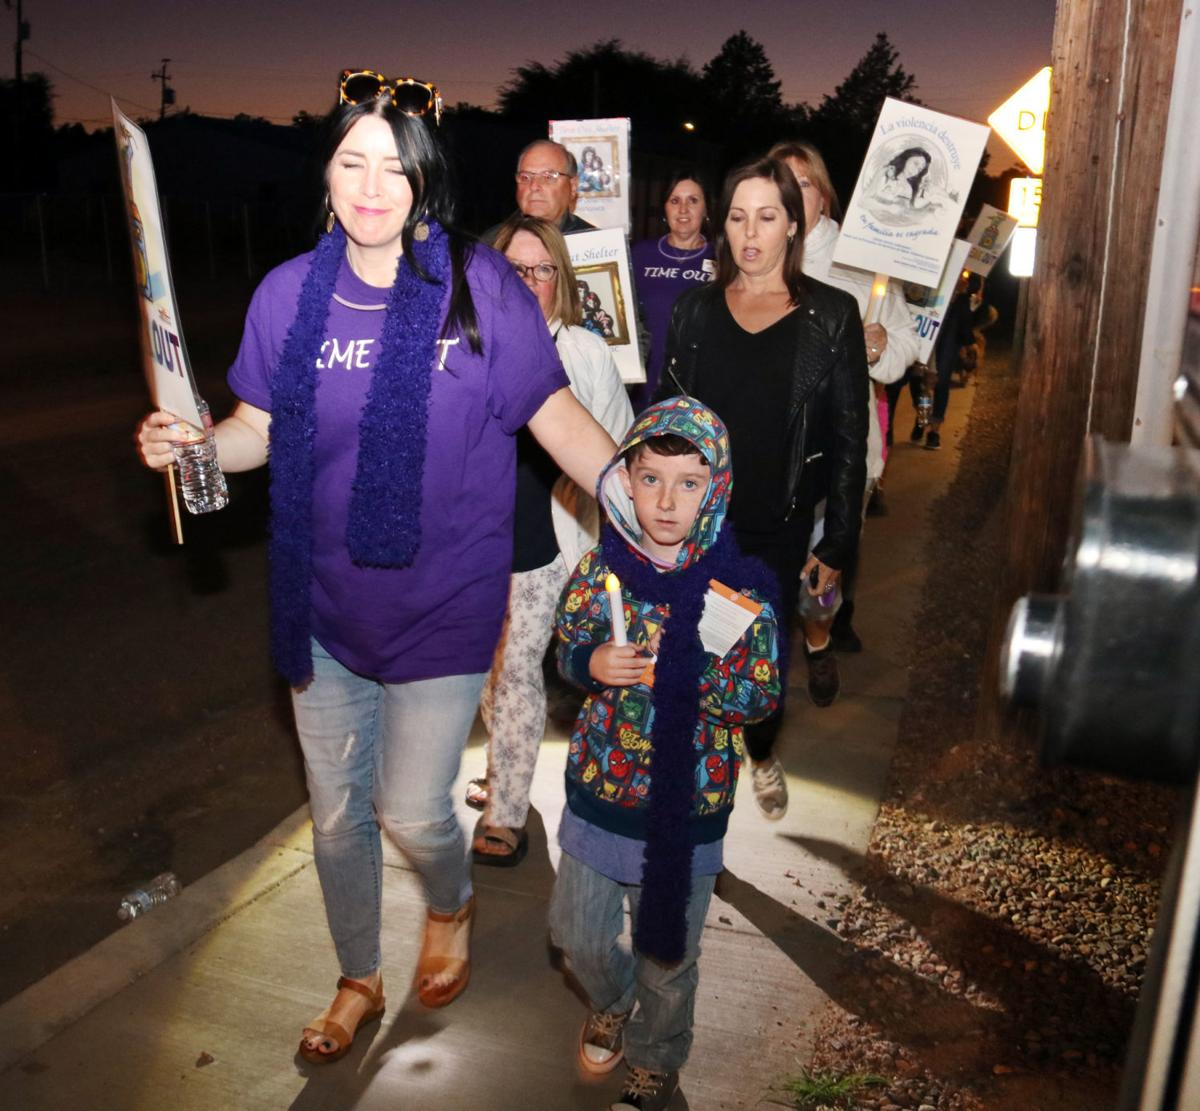 Walk to end domestic violence 2019